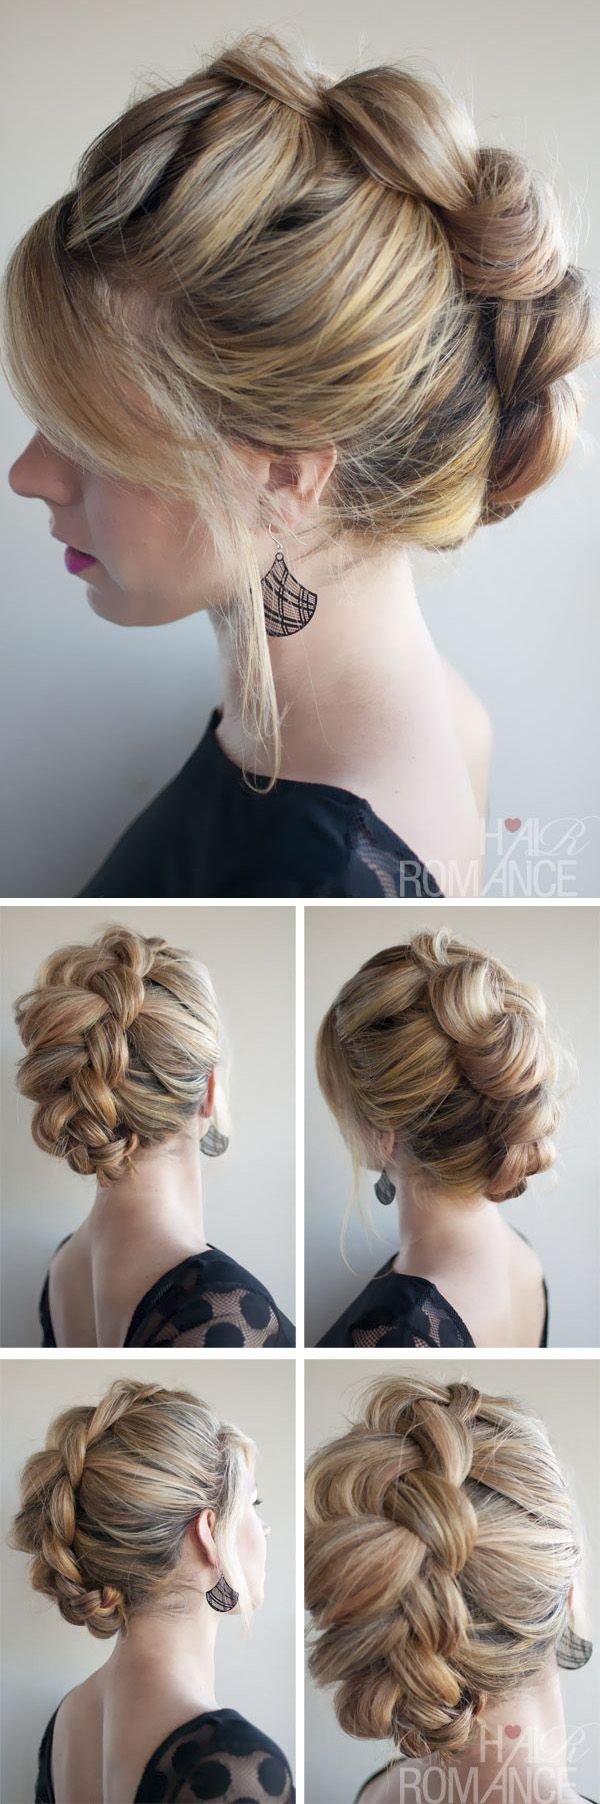 romantic braided hairstyles for long hair and medium hair